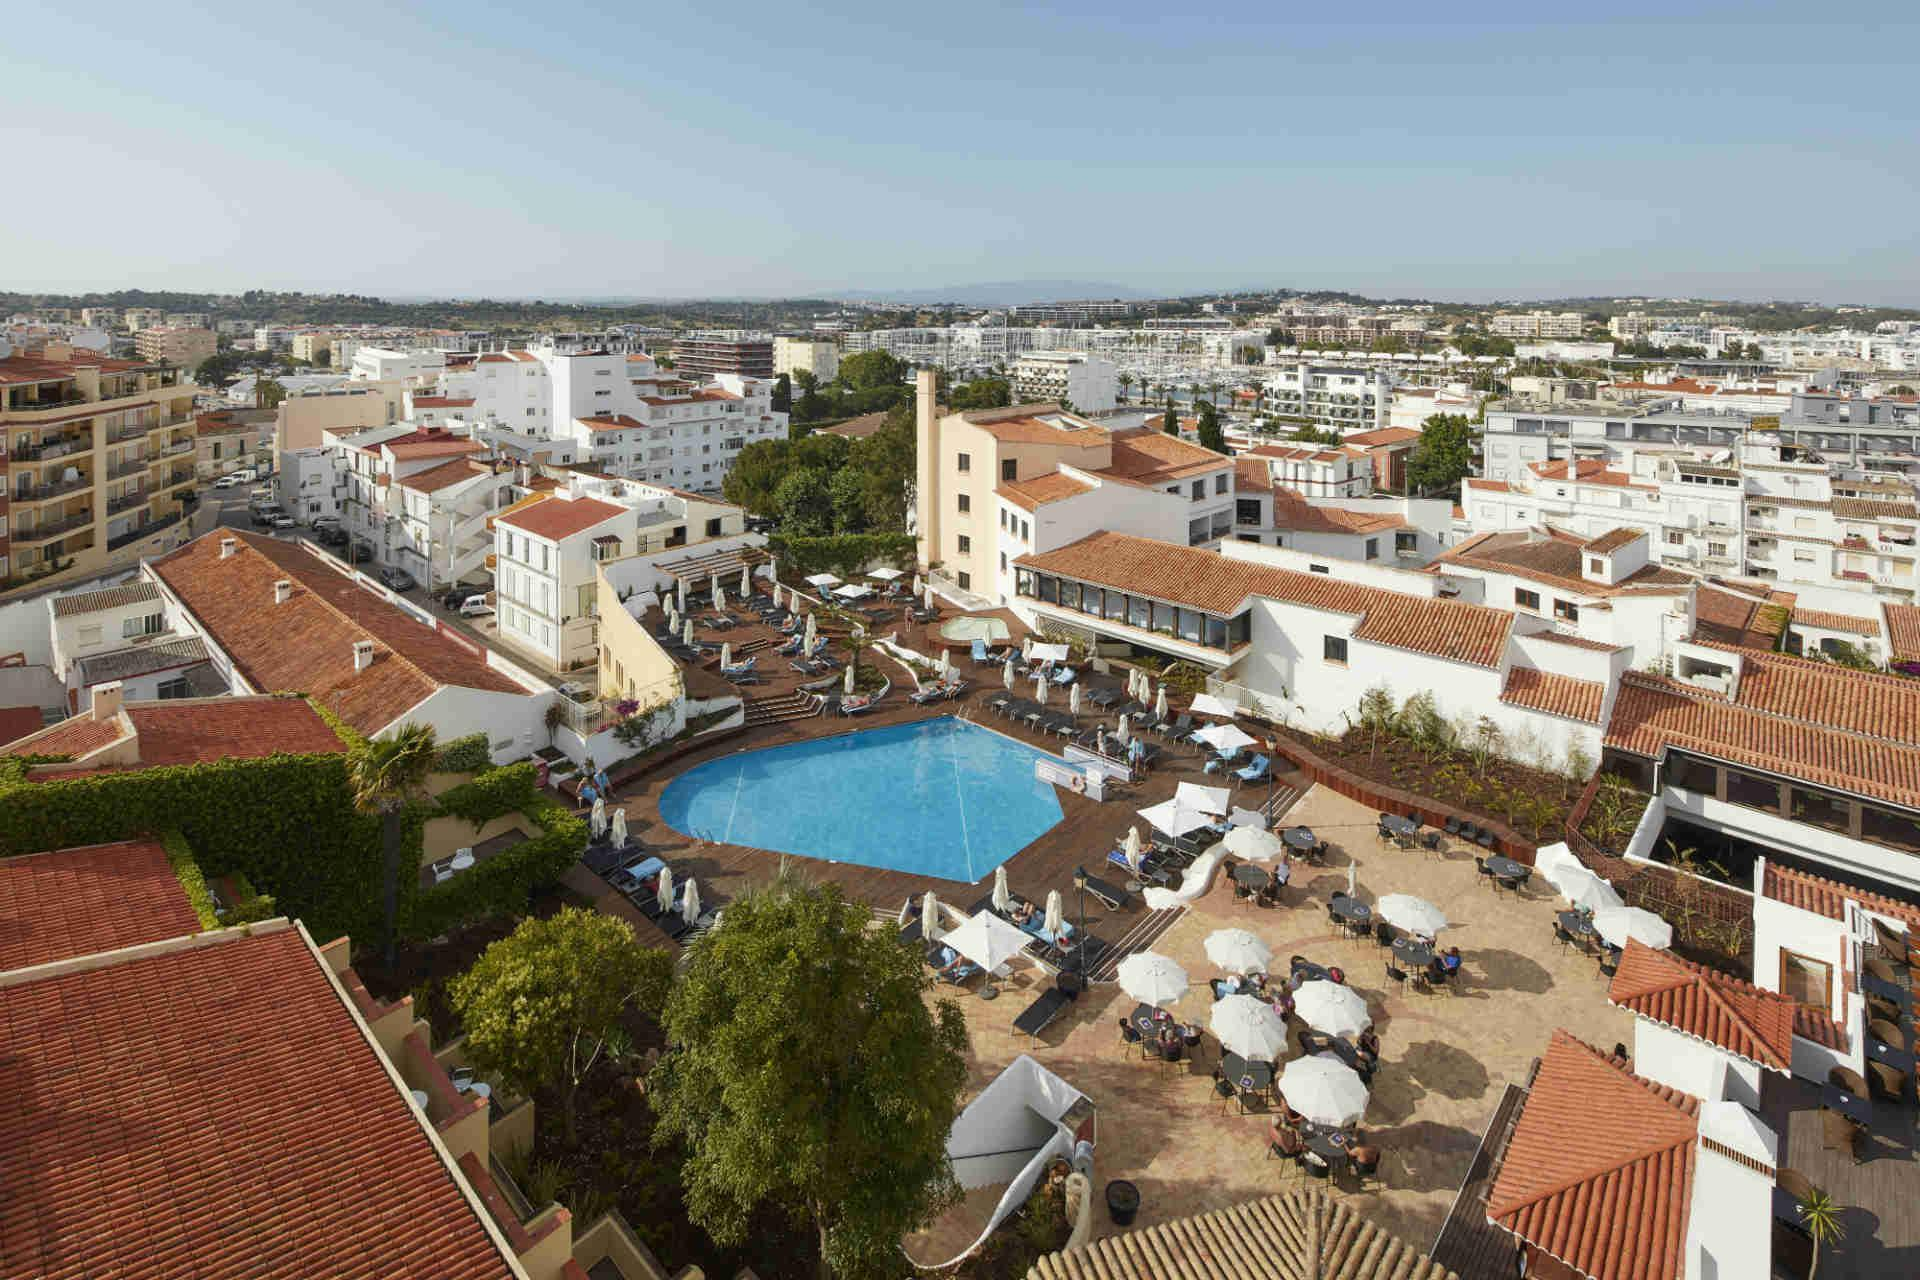 Tivoli Lagos Algarve Tivoli Lagos Hotel Portugal Photos Room Rates Promotions